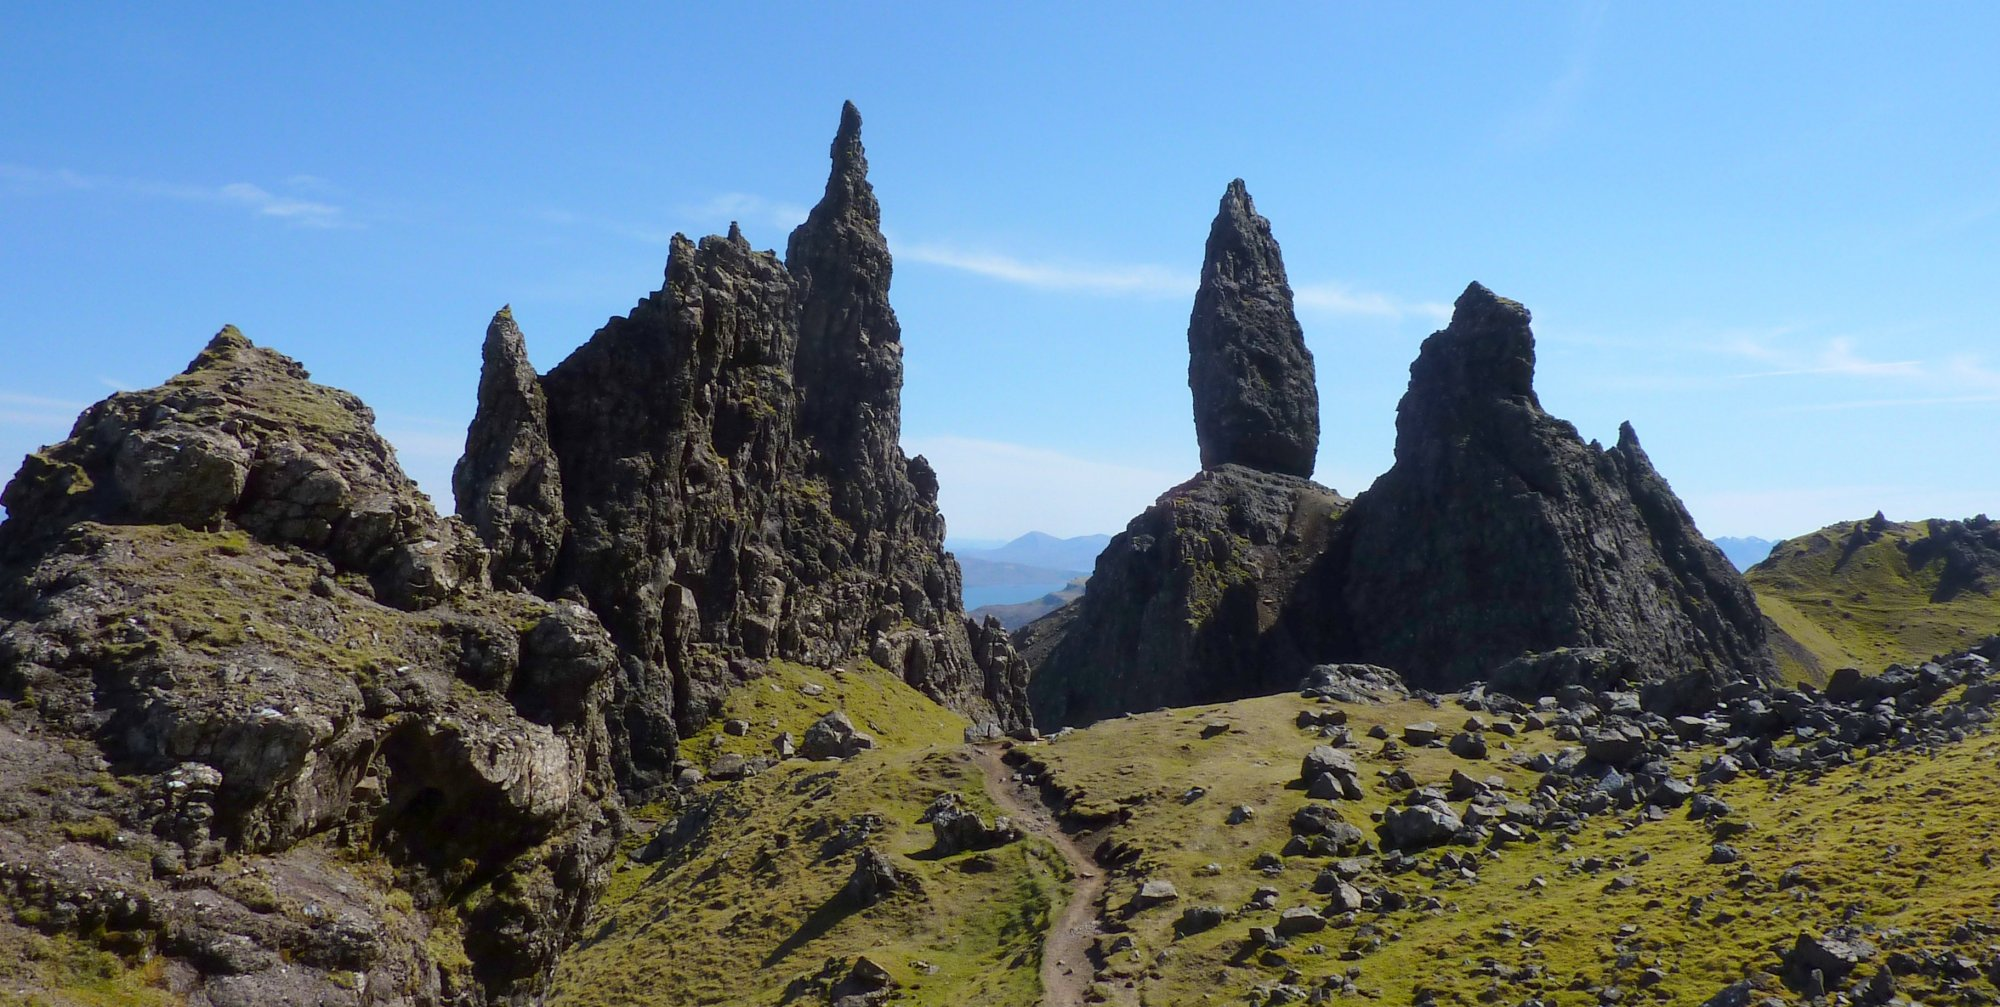 The awseome, jagged scenery around the Old Man of Storr